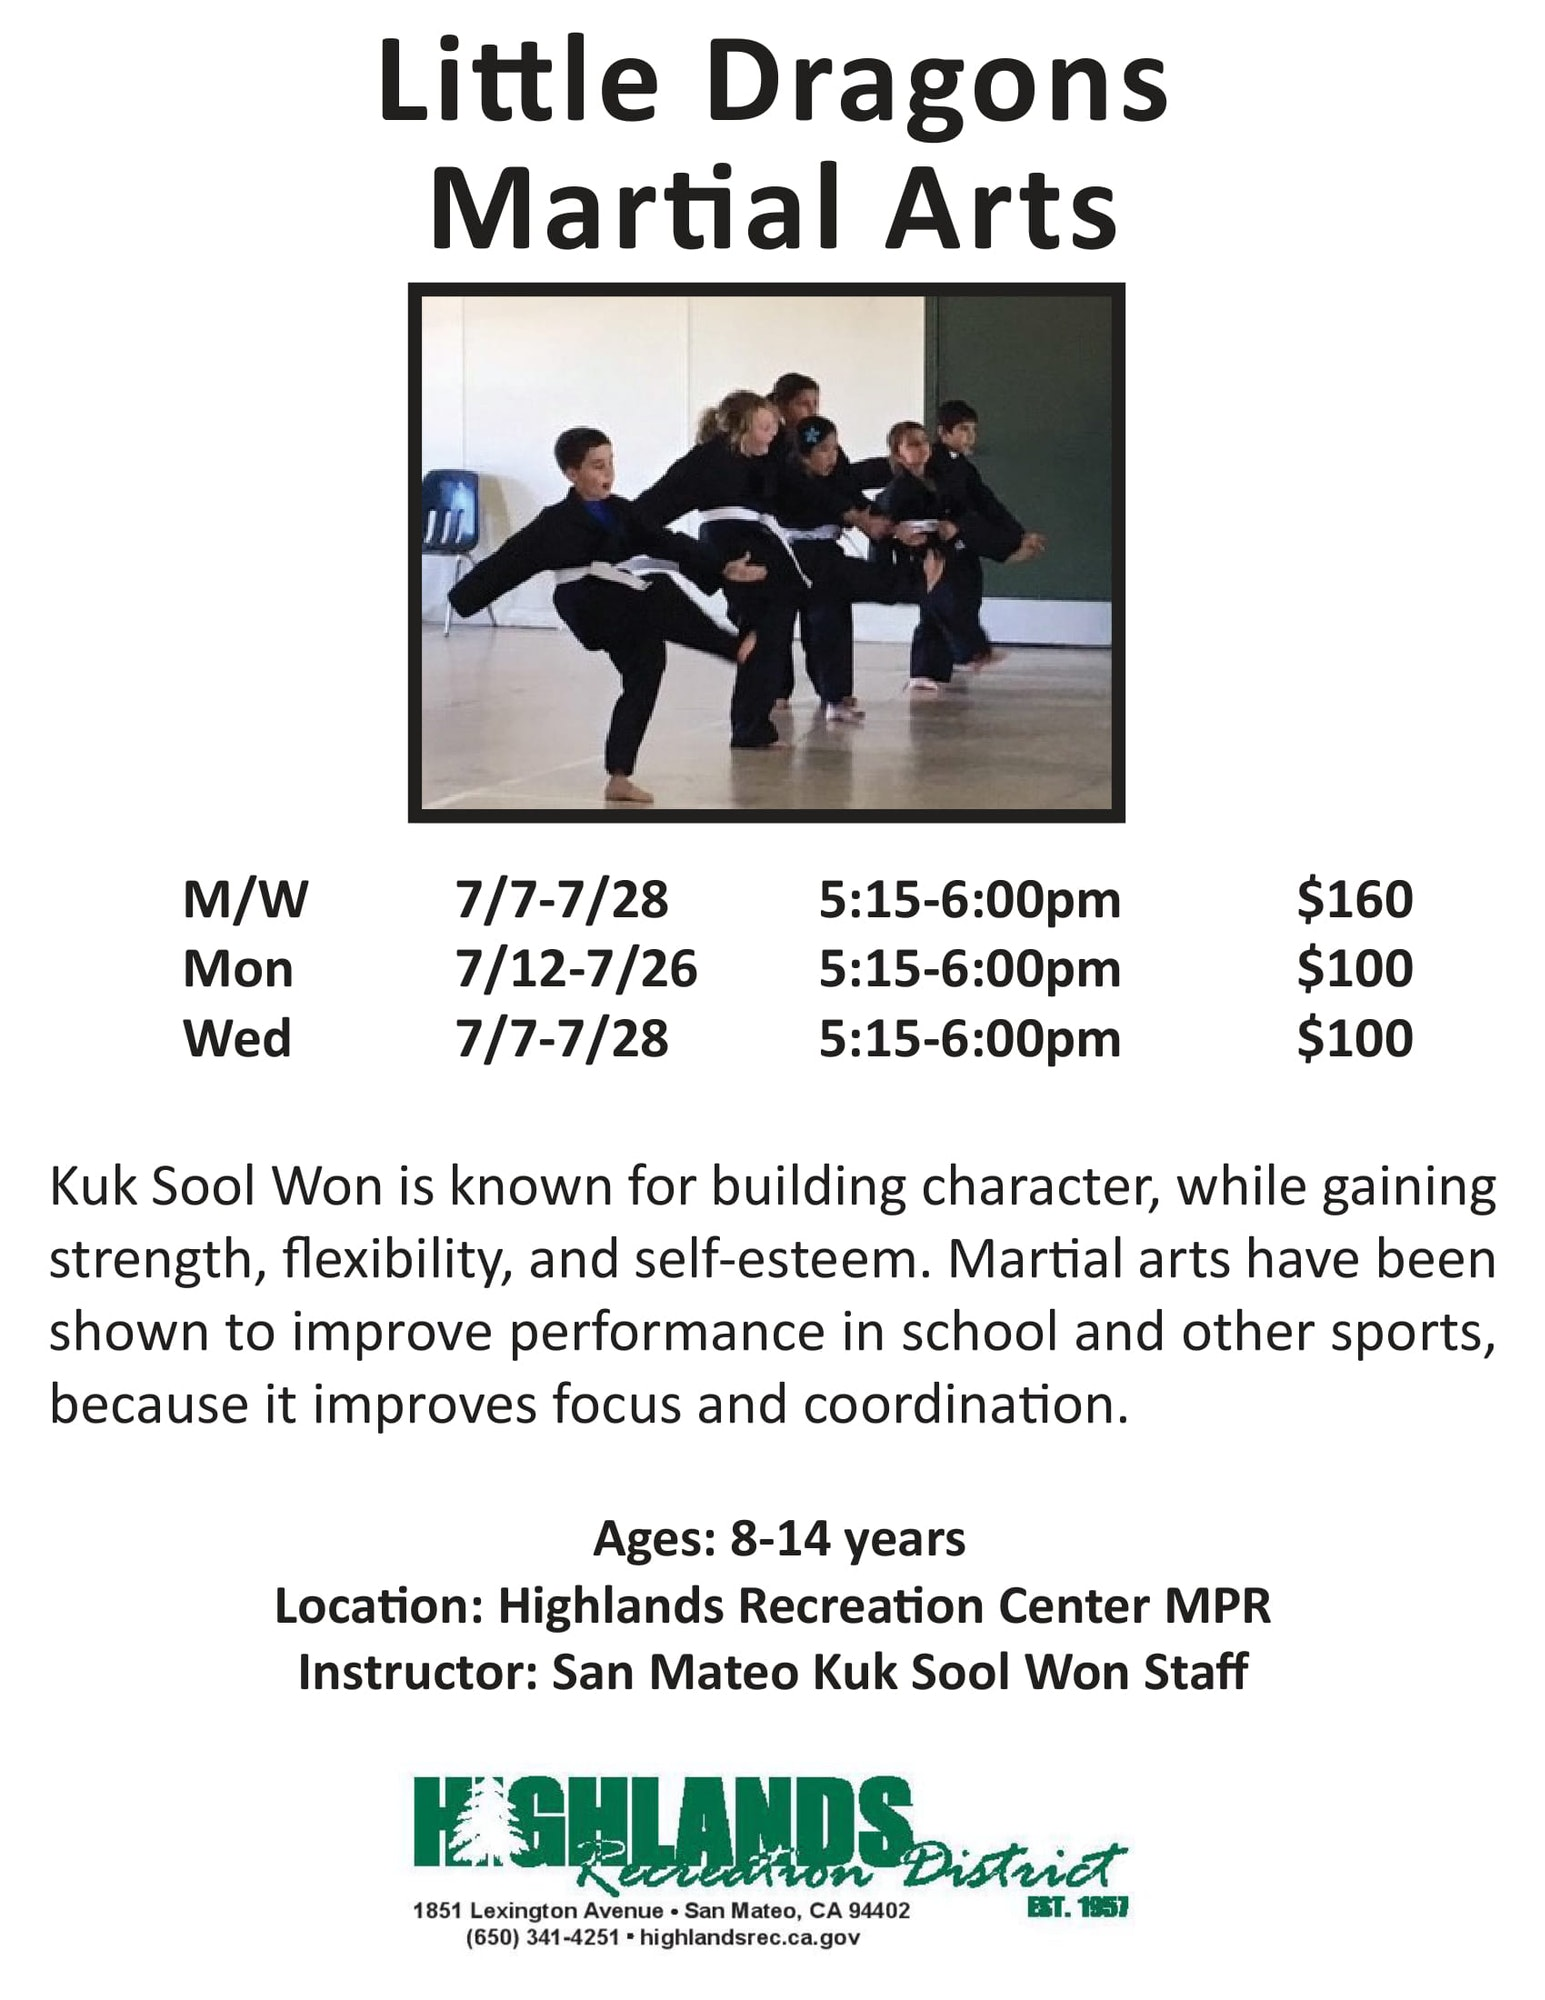 May contain: person, human, flyer, paper, brochure, poster, advertisement, martial arts, sport, and sports